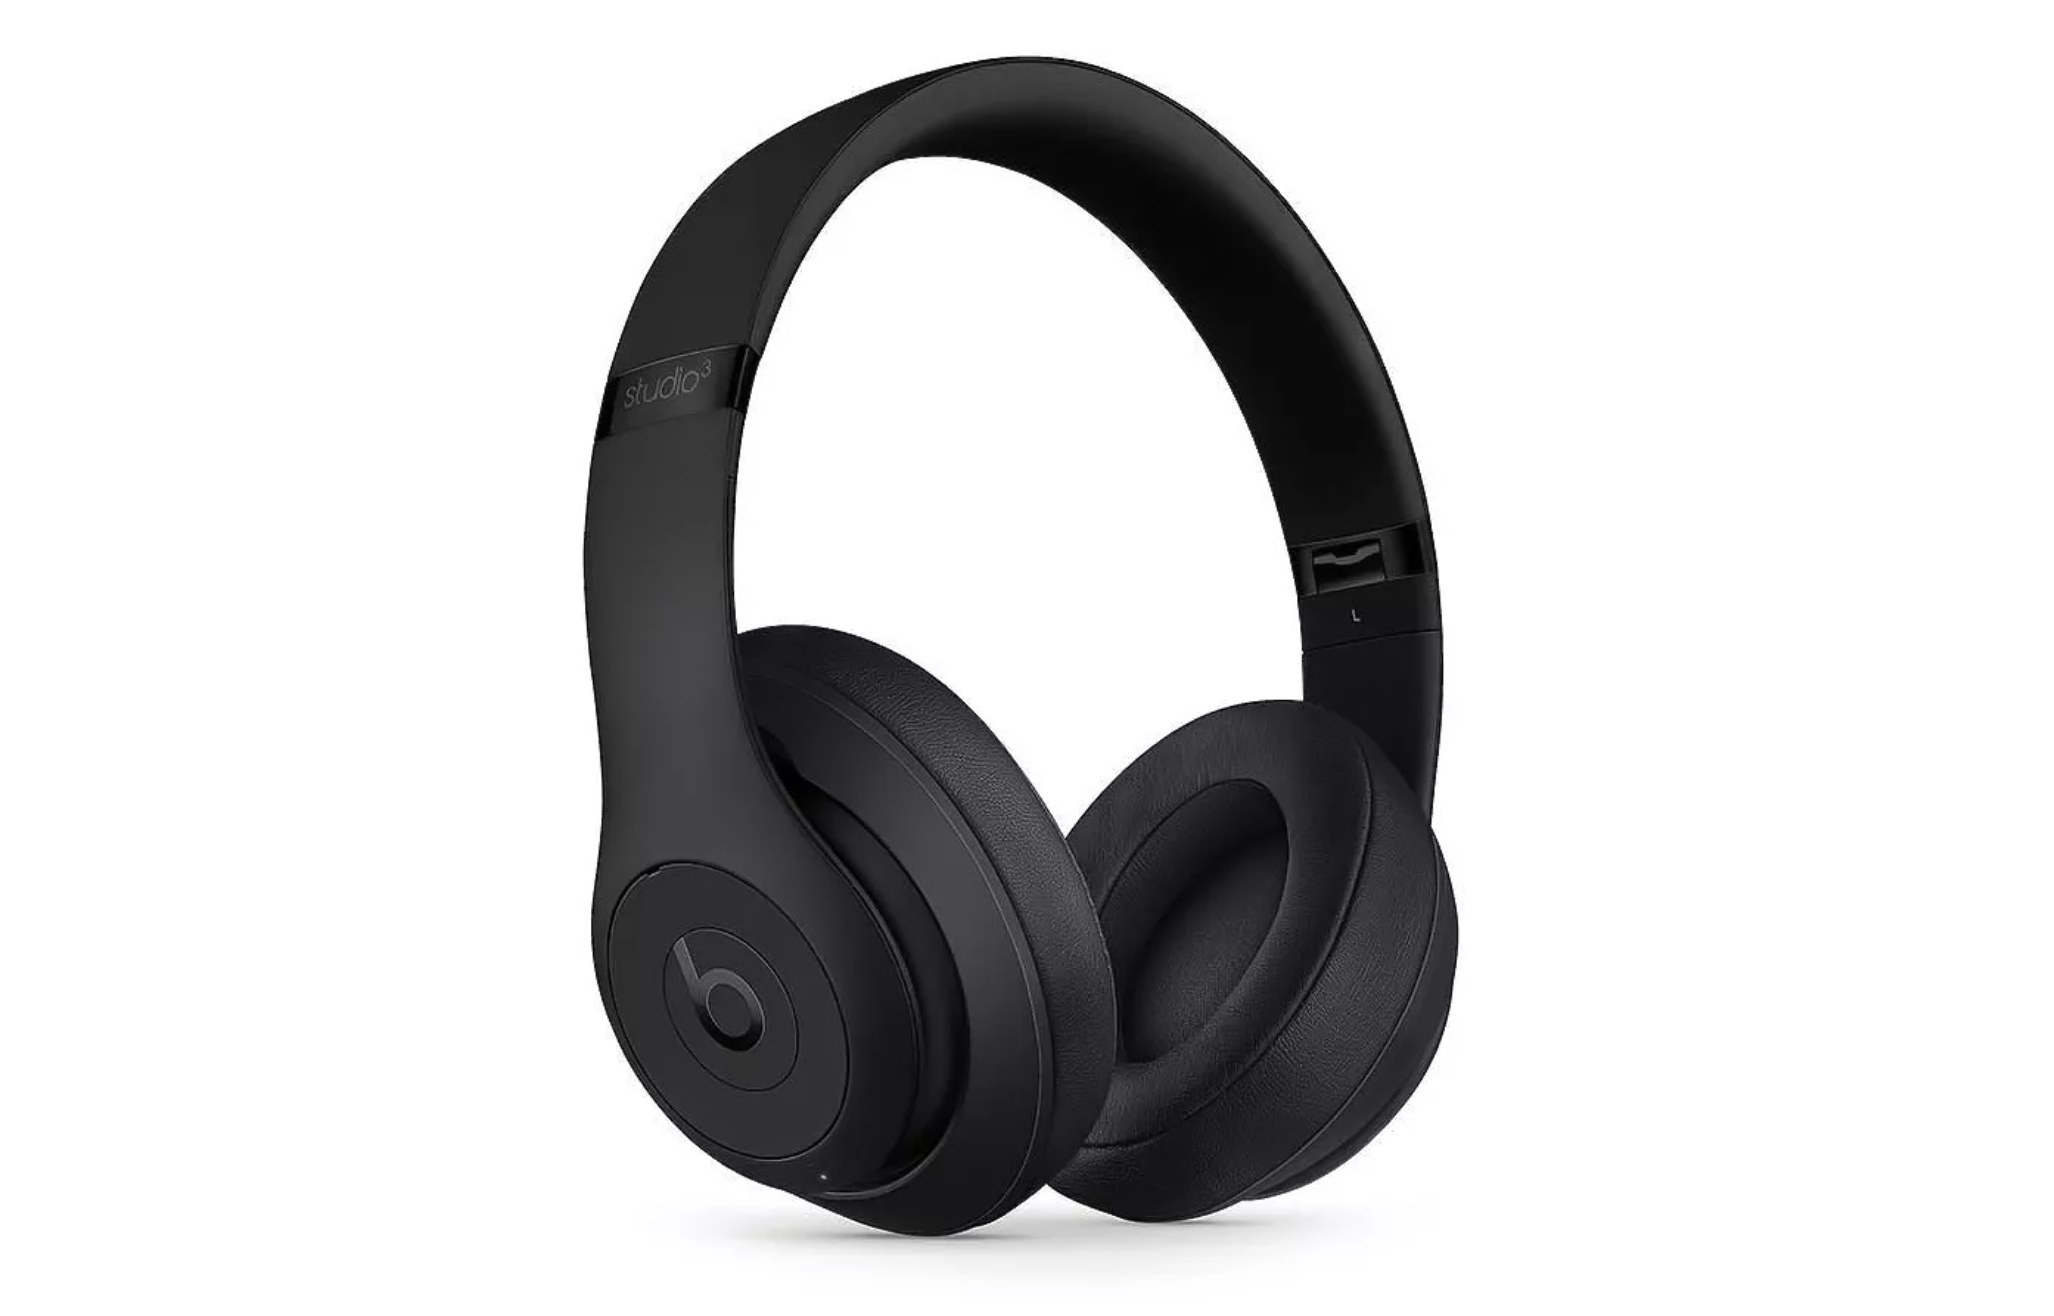 A pair of black over-the-ear headphones